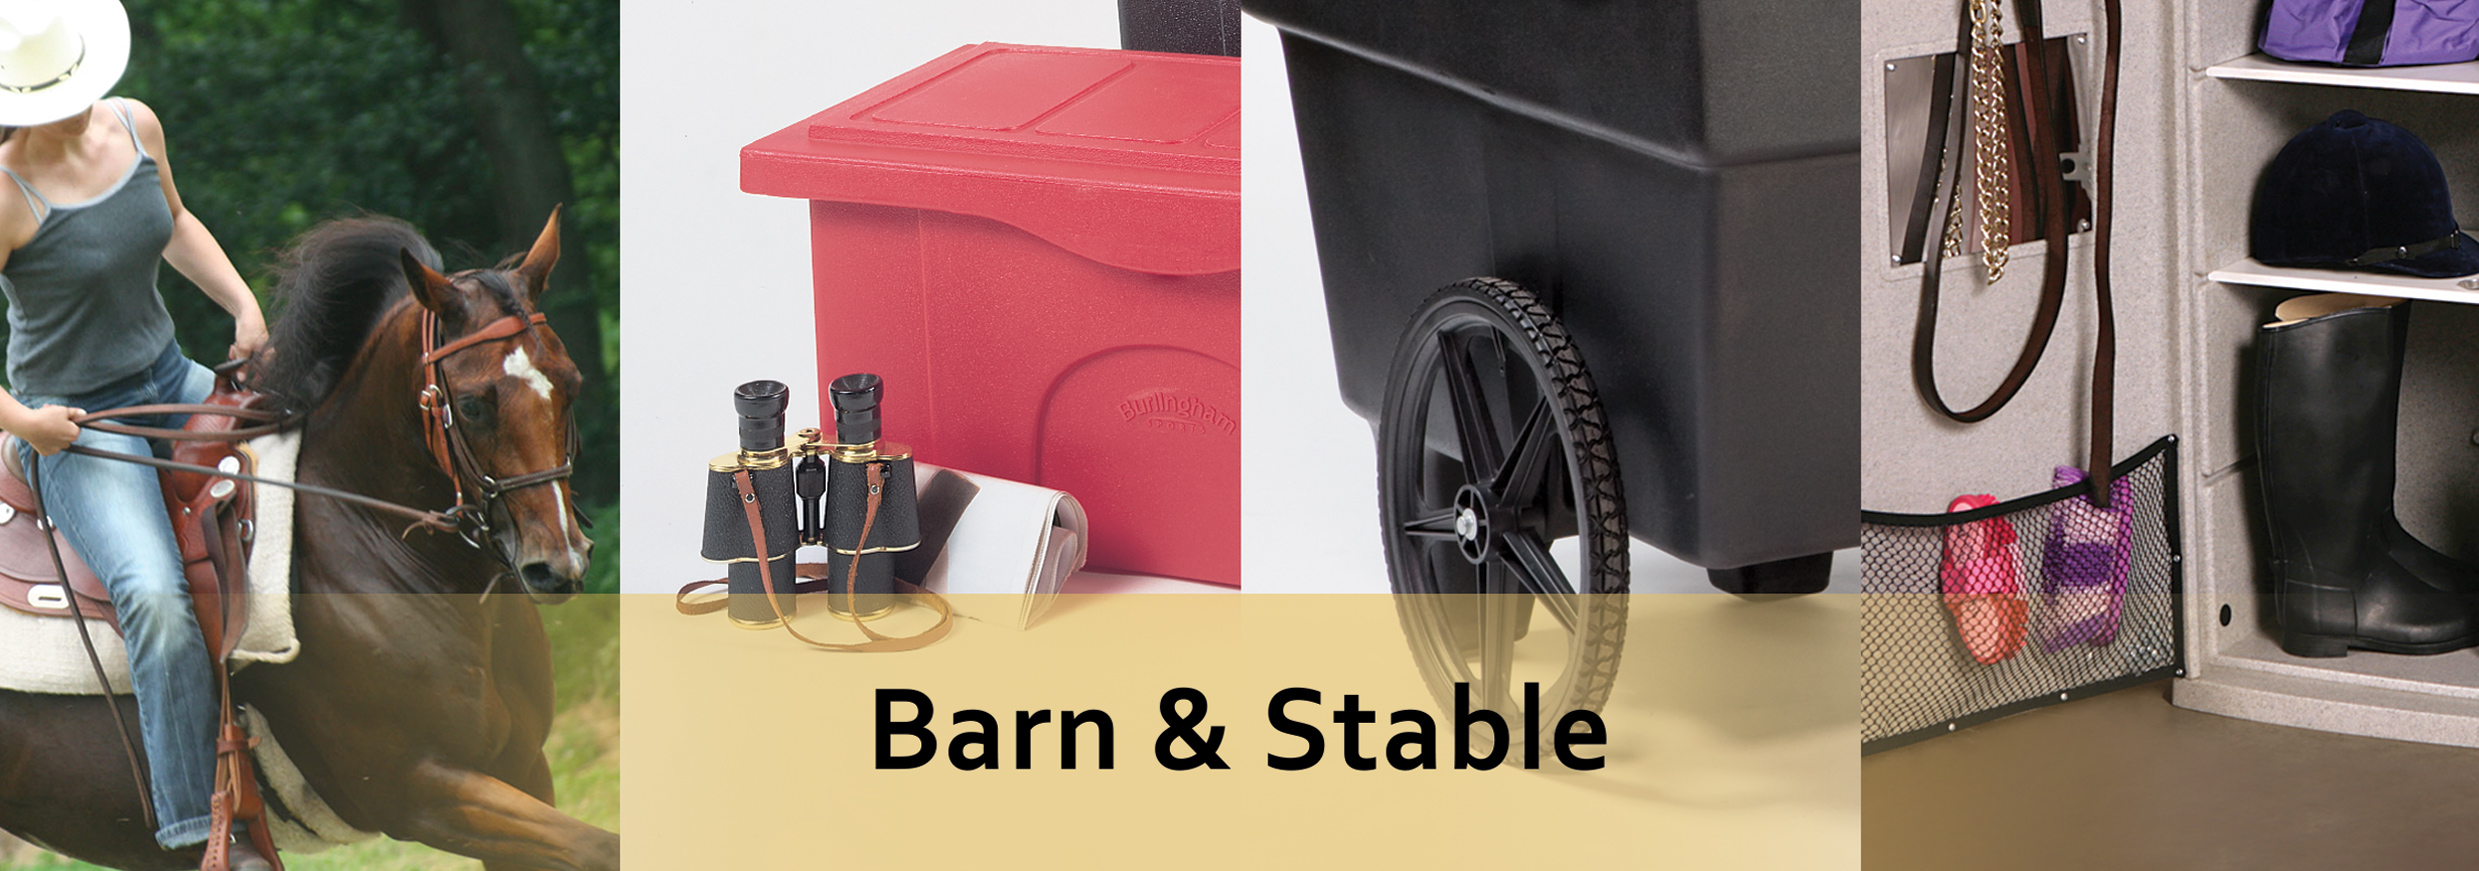 Barn-&-Stable-Landing-Page-Image-2